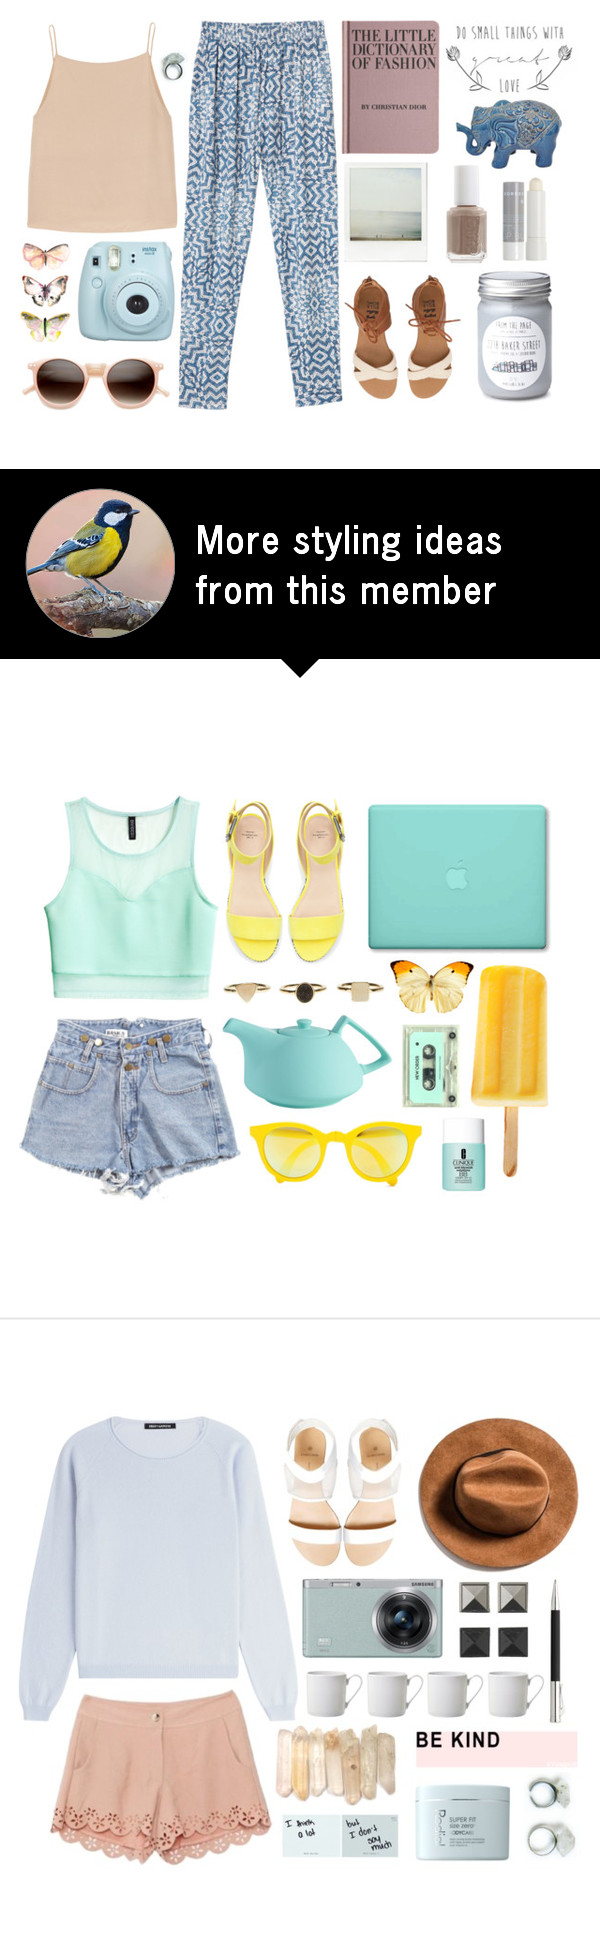 """Lazy spring morning"" by rheeee on Polyvore featuring Monki, T By Alexander Wang, Hachette Book Group, Retrò, Korres, Billabong and Essie"